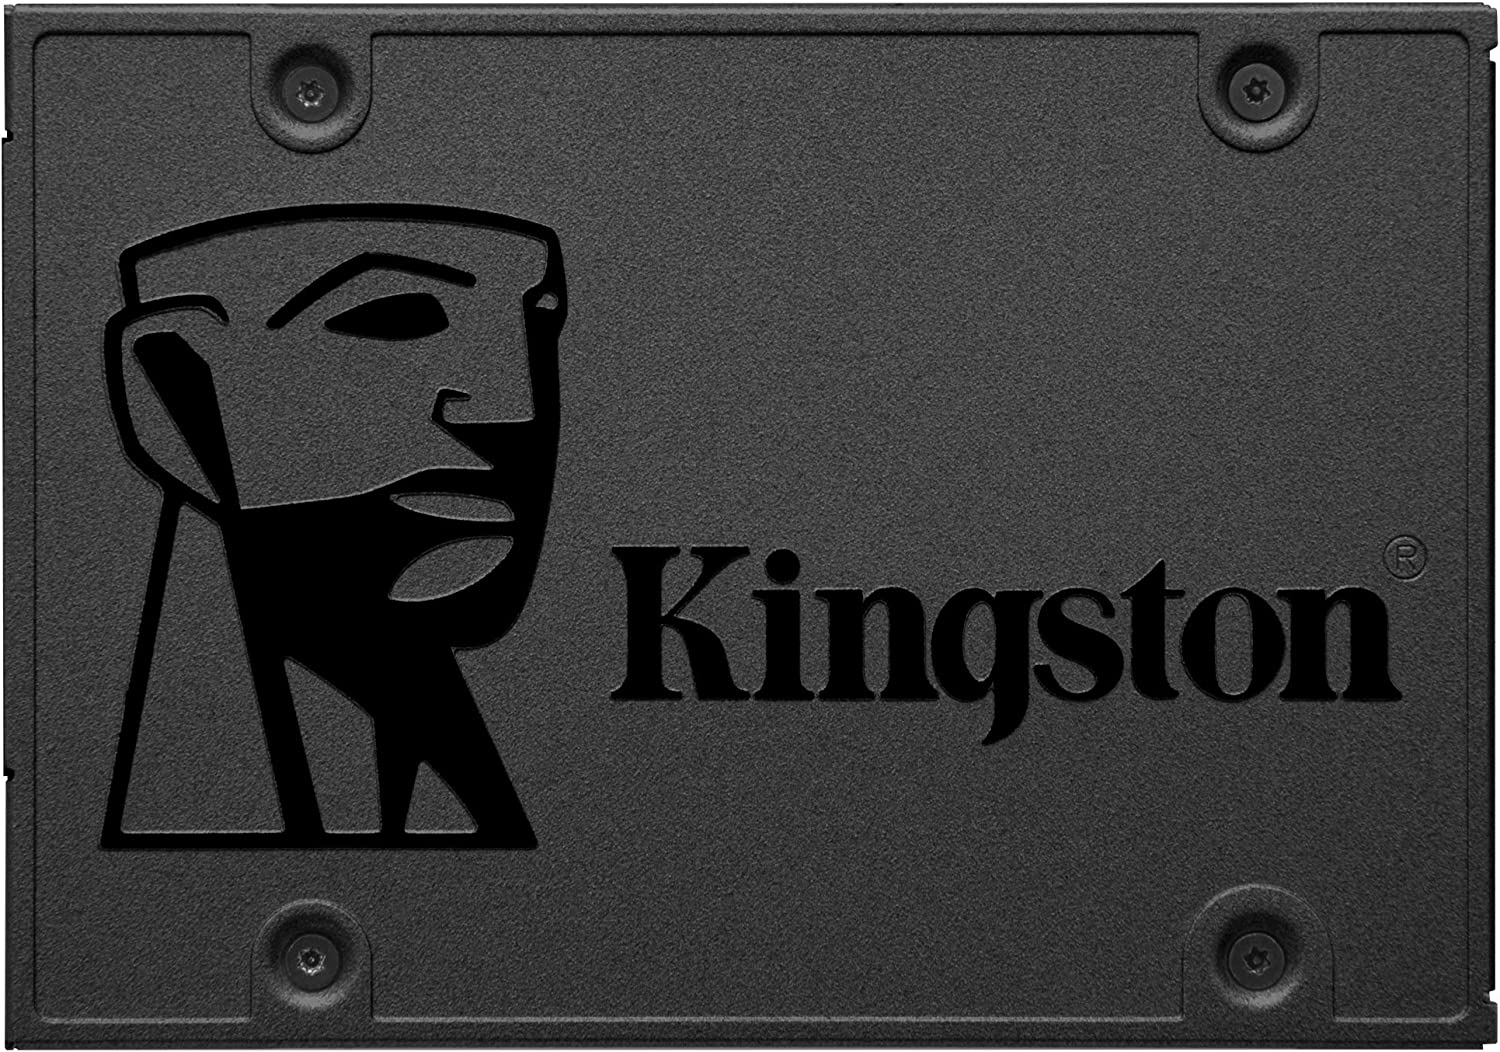 Kingston HD 2.5 SSD 480GB SATA3 SSDNOW A400: Amazon.es: Electrónica